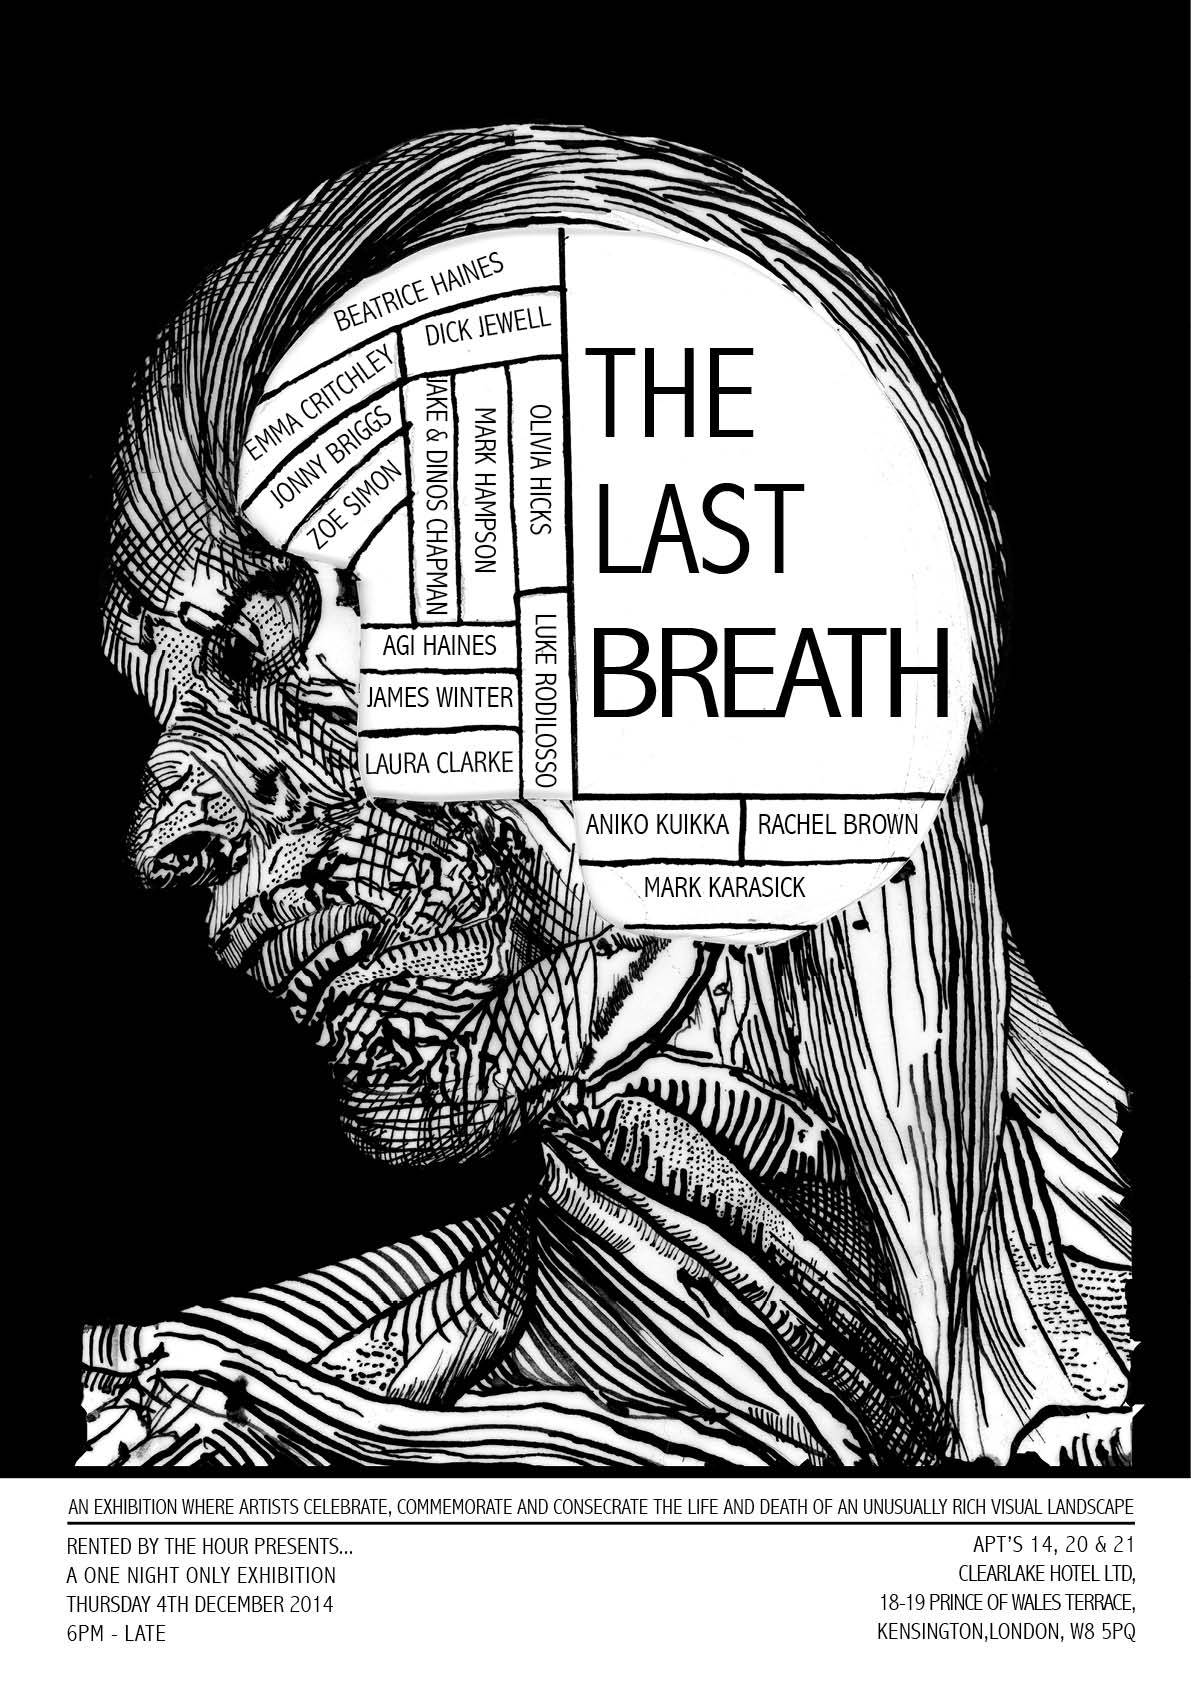 I am co-curating and exhibiting in a one day only exhibition called 'The Last Breath', on Thursday 4th December. Artists include Beatrice Haines, Olivia Hicks, Dick Jewell, Jonny Briggs, Jake and Dinos Chapman and many more!   For more details please email me directly or visit:https://www.kickstarter.com/projects/1724801804/last-breath